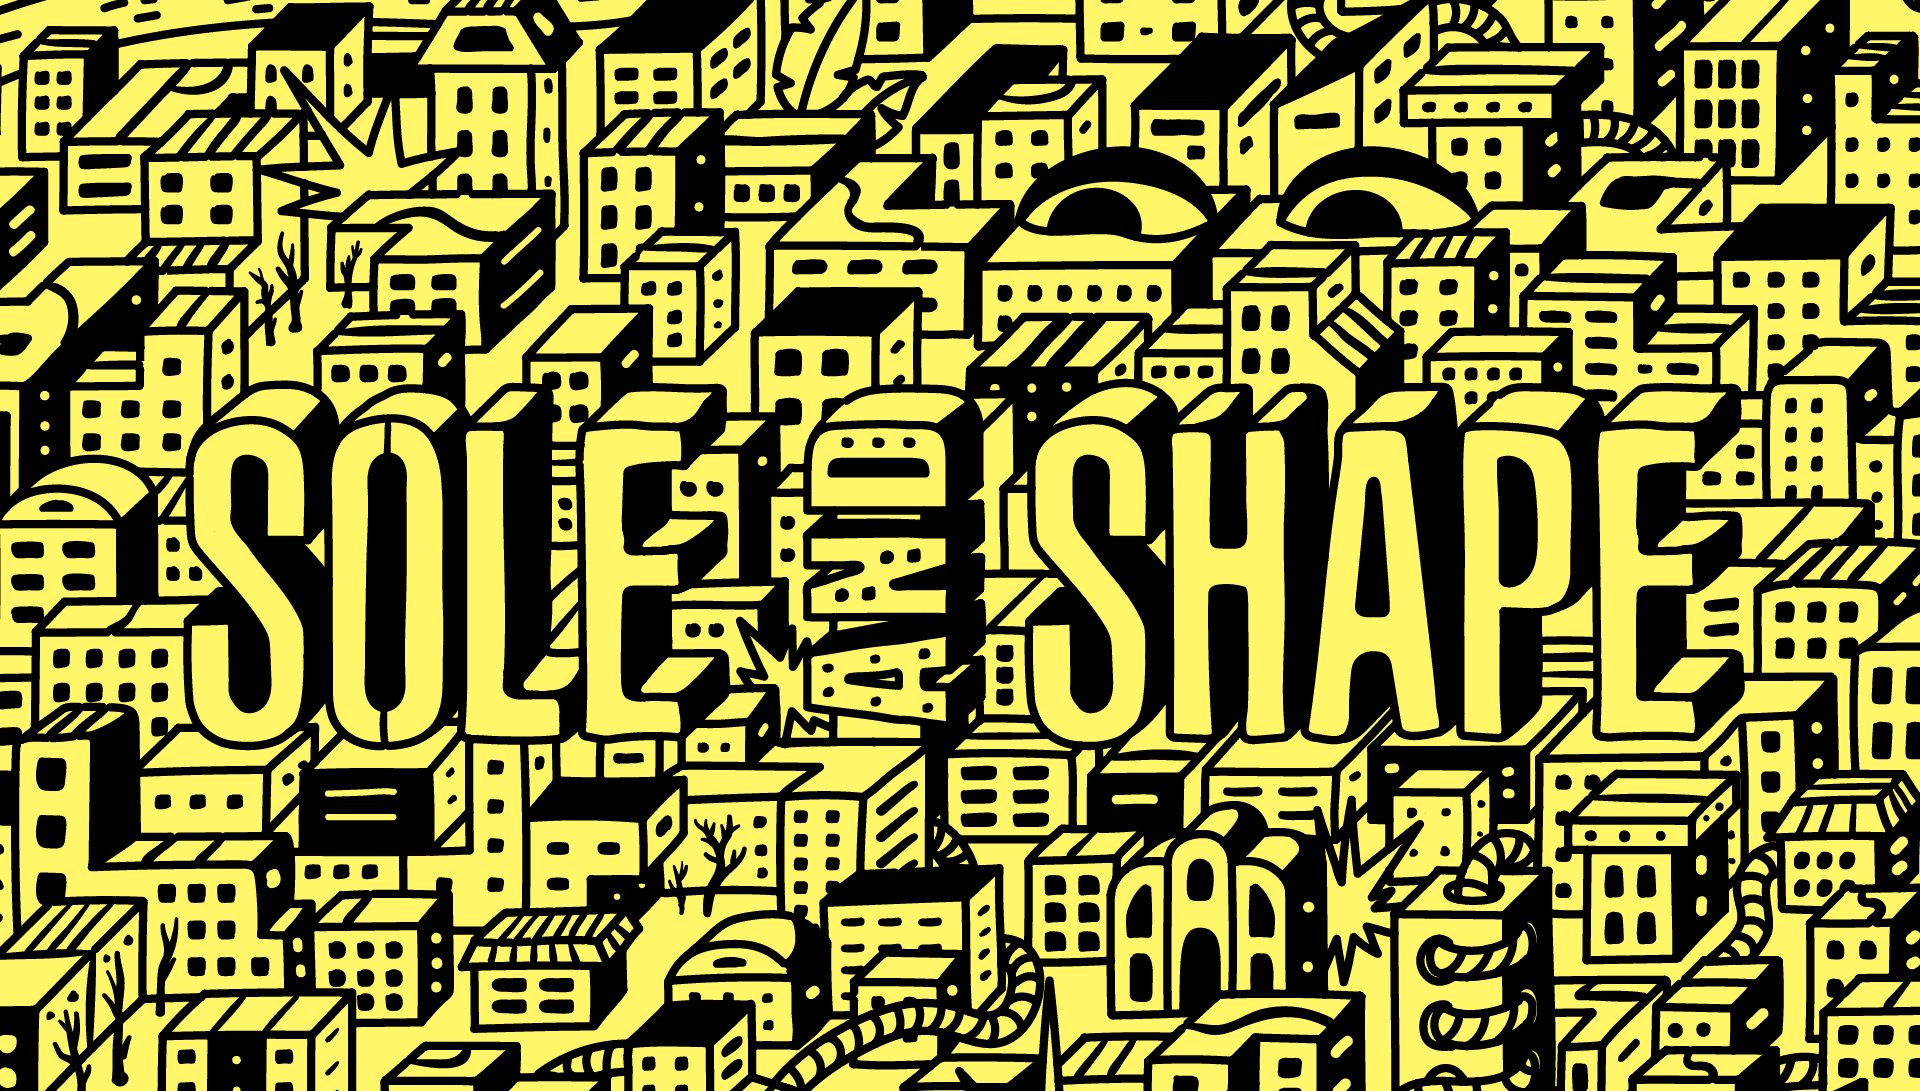 SOLE AND SHAPE 2018 - Romania's sneakers and streetwear event